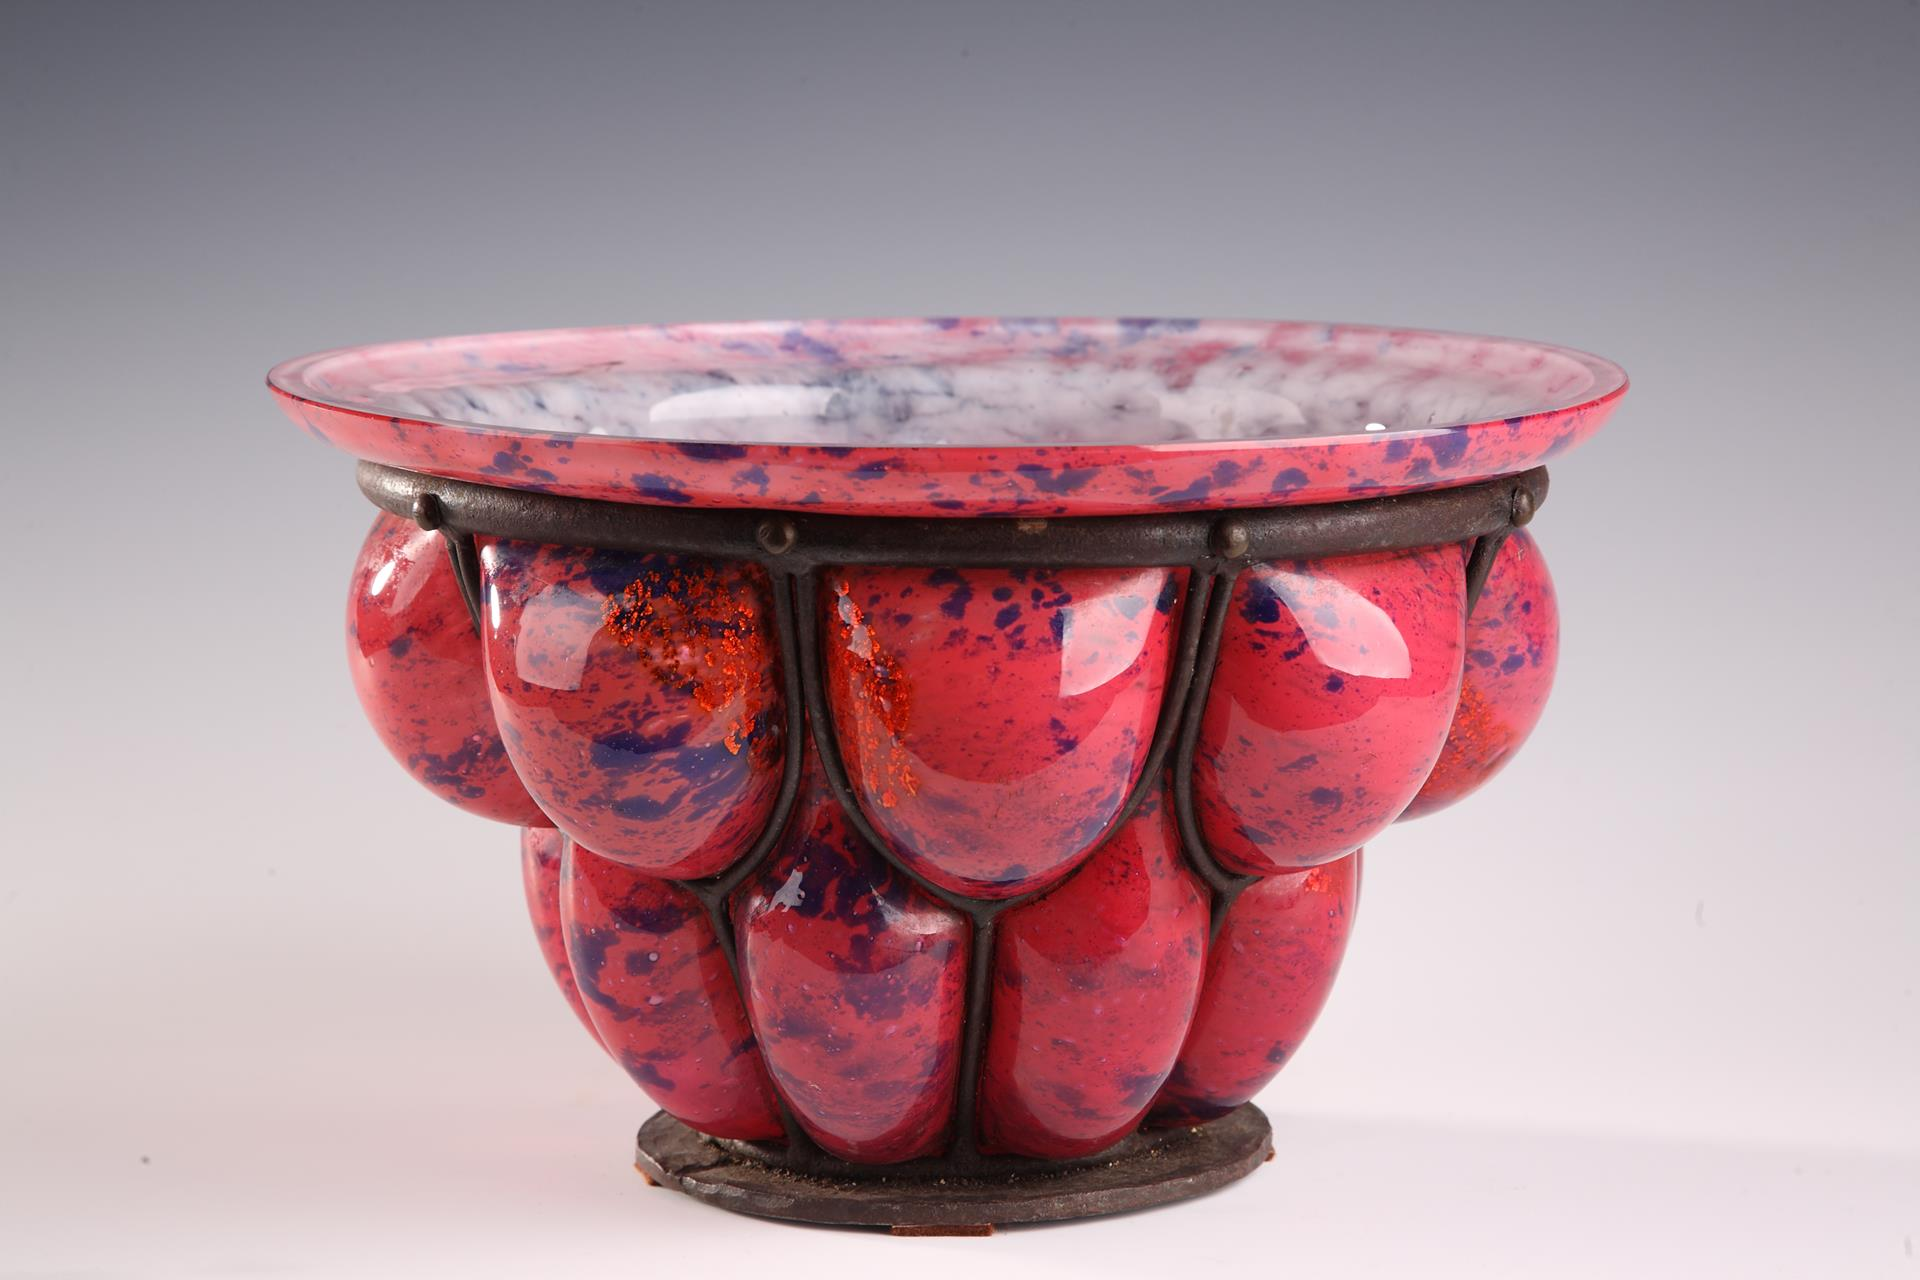 A LOUIS MAJORELLE AND DAUM GLASS AND WROUGHT-IRON BOWL. Art Deco Period.